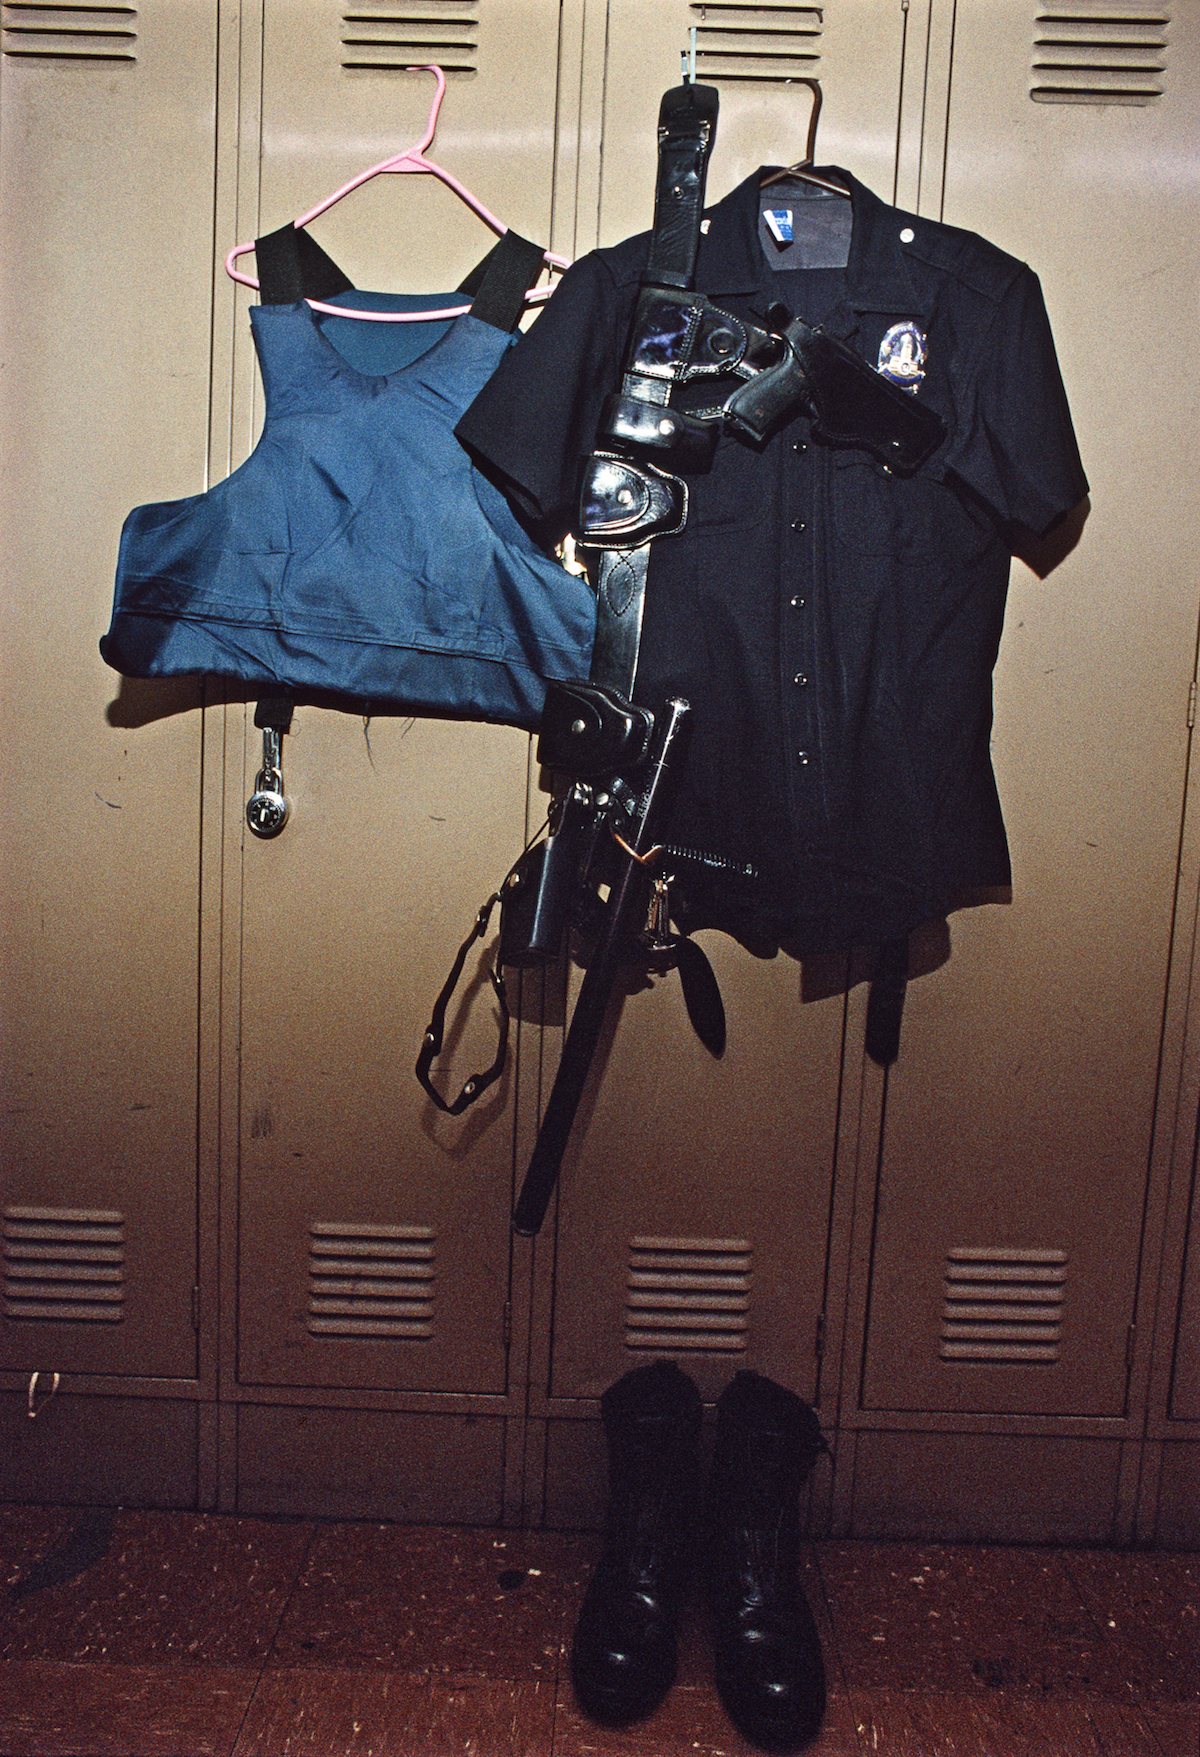 Parts of Rampart Division uniform. © Joseph Rodriguez, from LAPD 1994